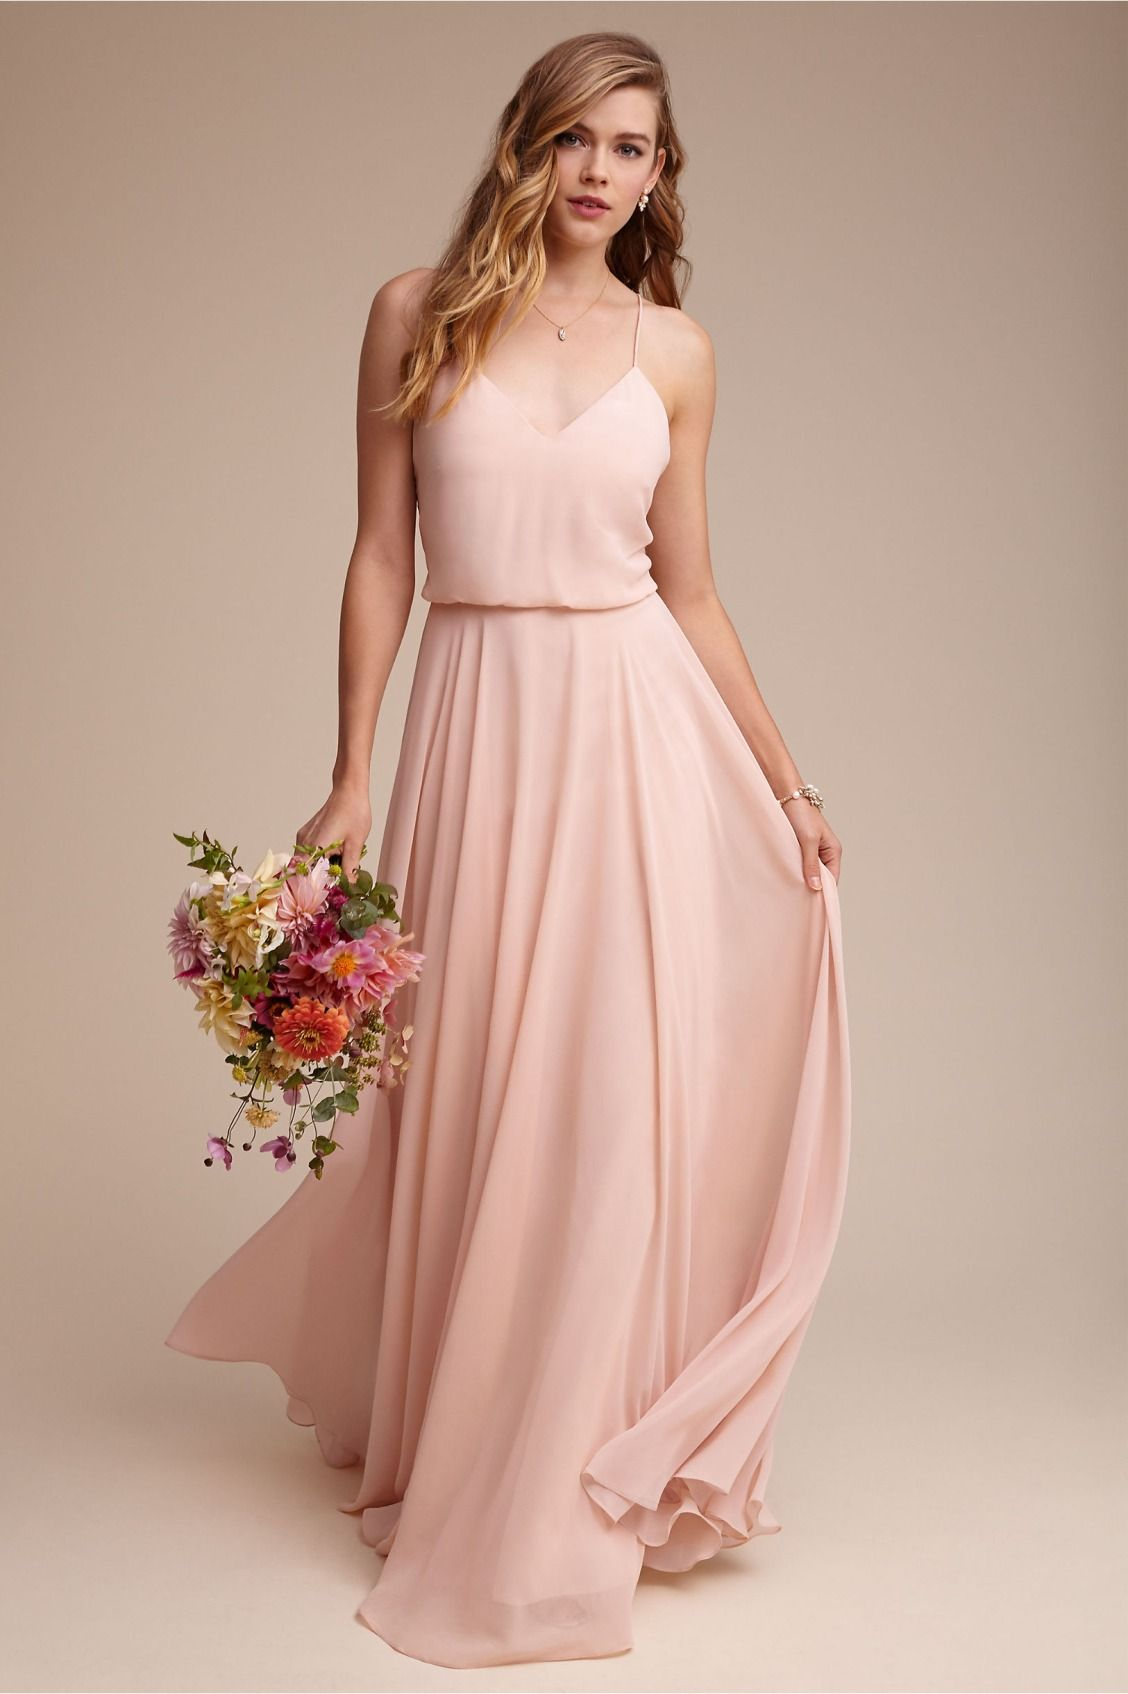 a chic maid | Inesse Dress in Blush from BHLDN | Women\'s fashion ...